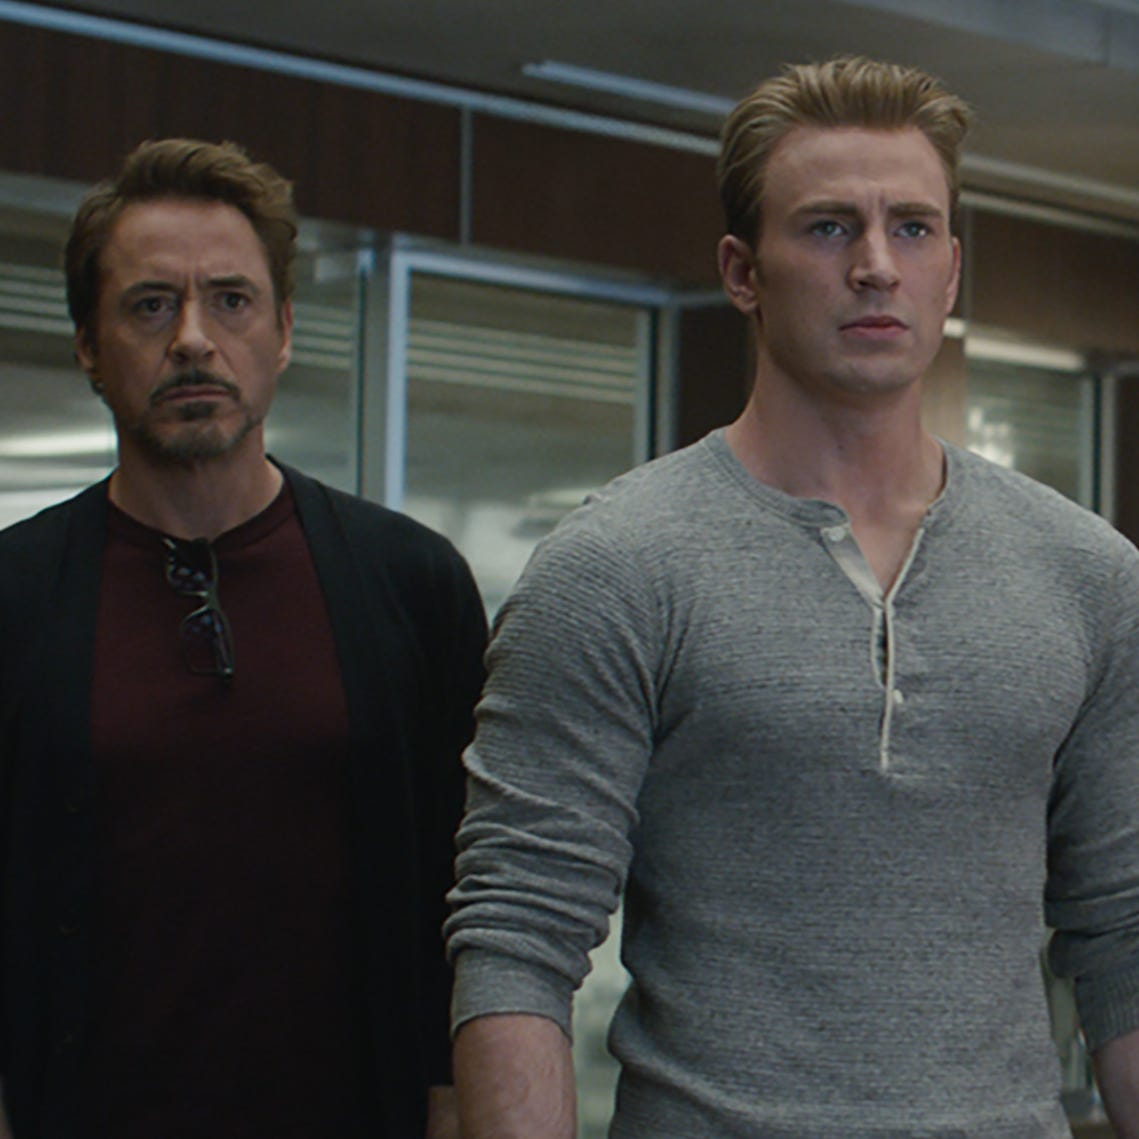 Heading to a theater for 'Avengers: Endgame' this weekend? Here's what you should know